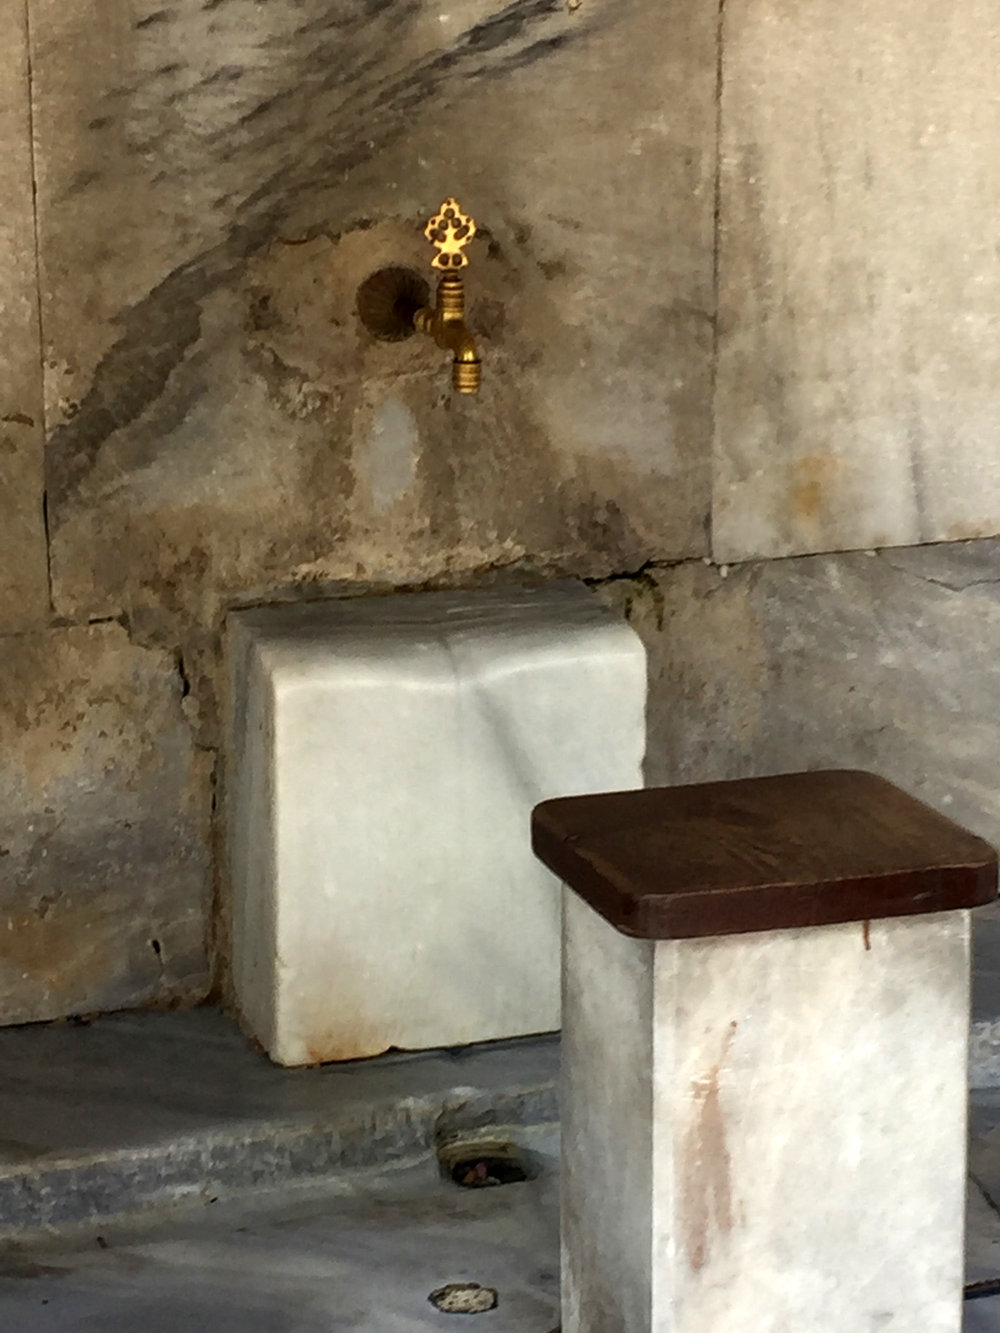 One of the many taps where believers wash their face, hands and feet before prayer.